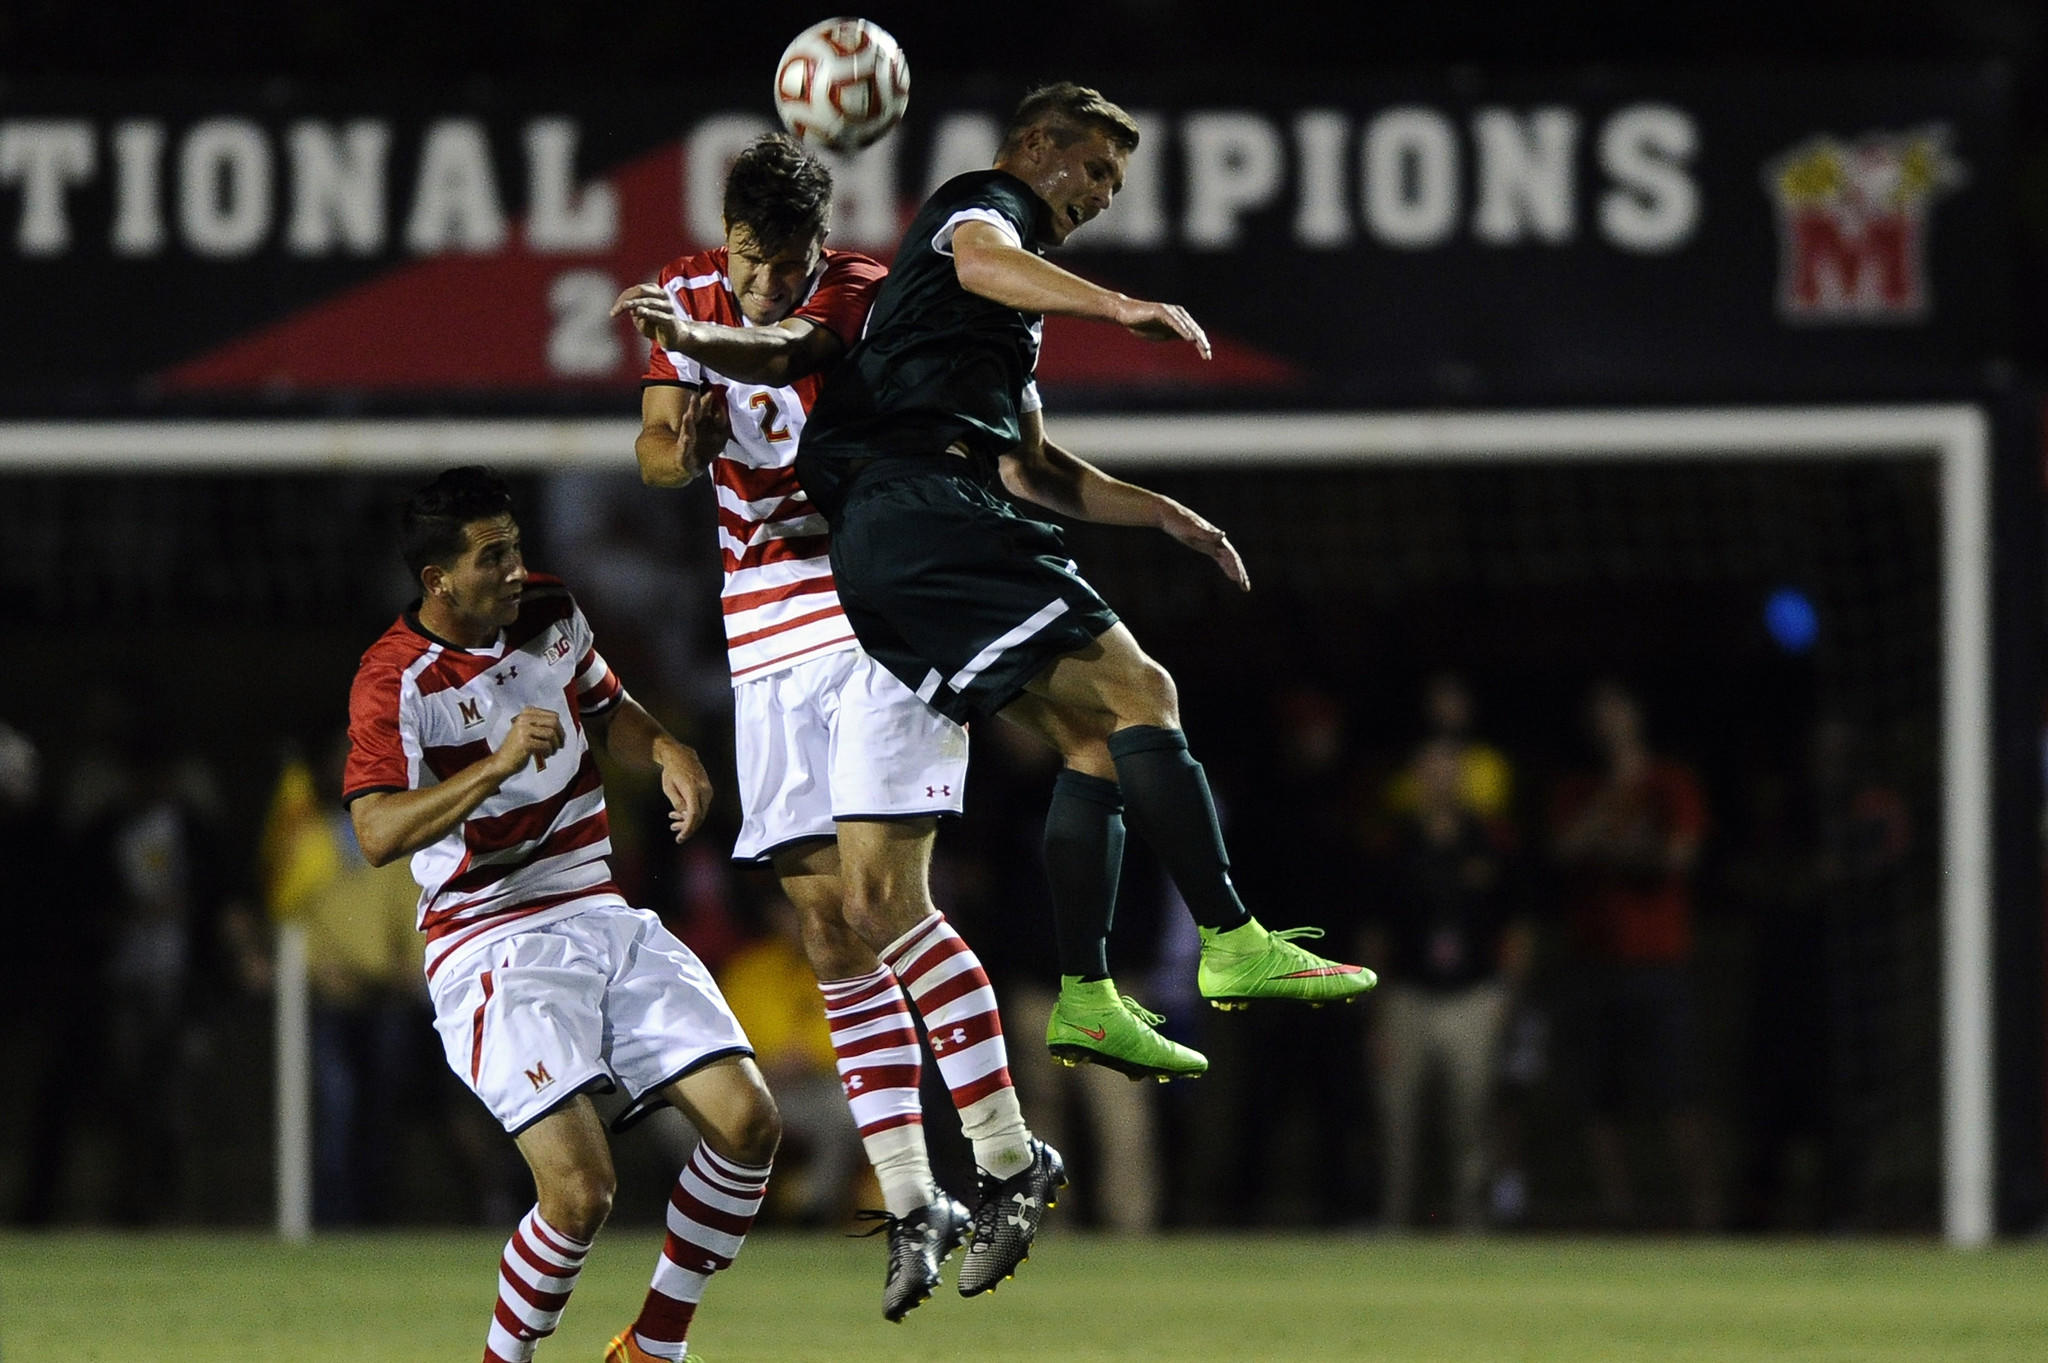 Alex Crognale (2) leaps for a header against Michigan State in the Terps' 1-0 loss Friday at Ludwig Field.